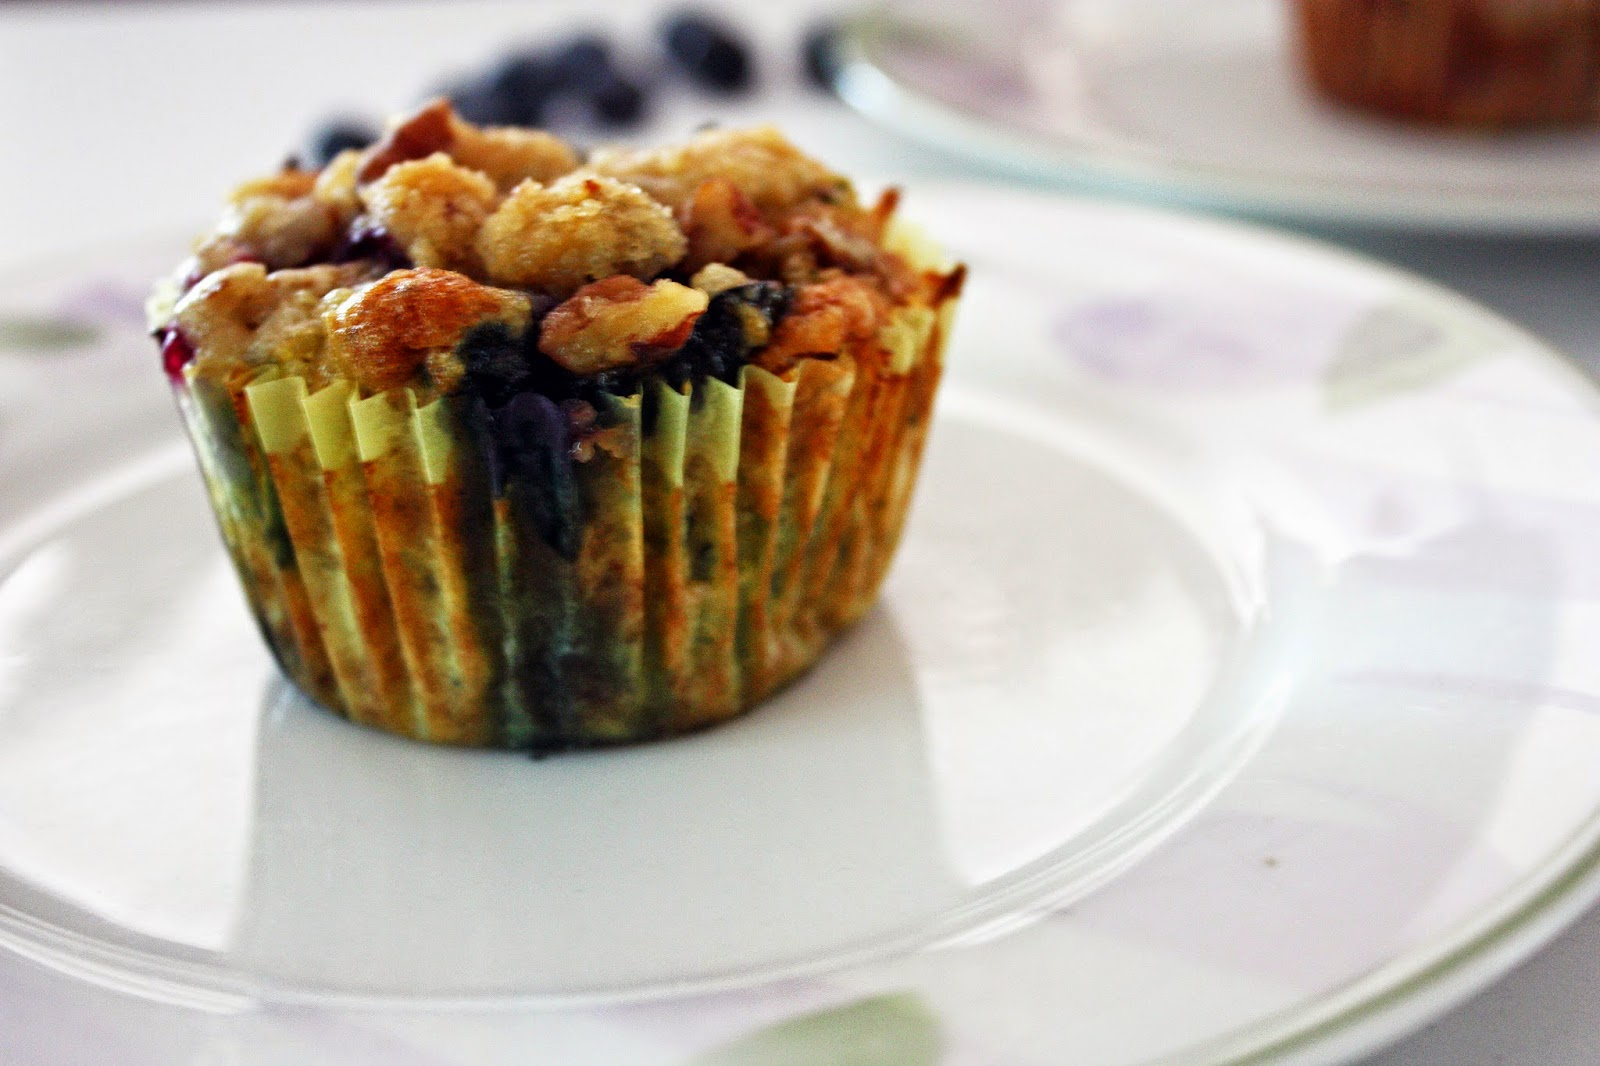 vegan lemon blueberry zucchini muffins with pecan streusel